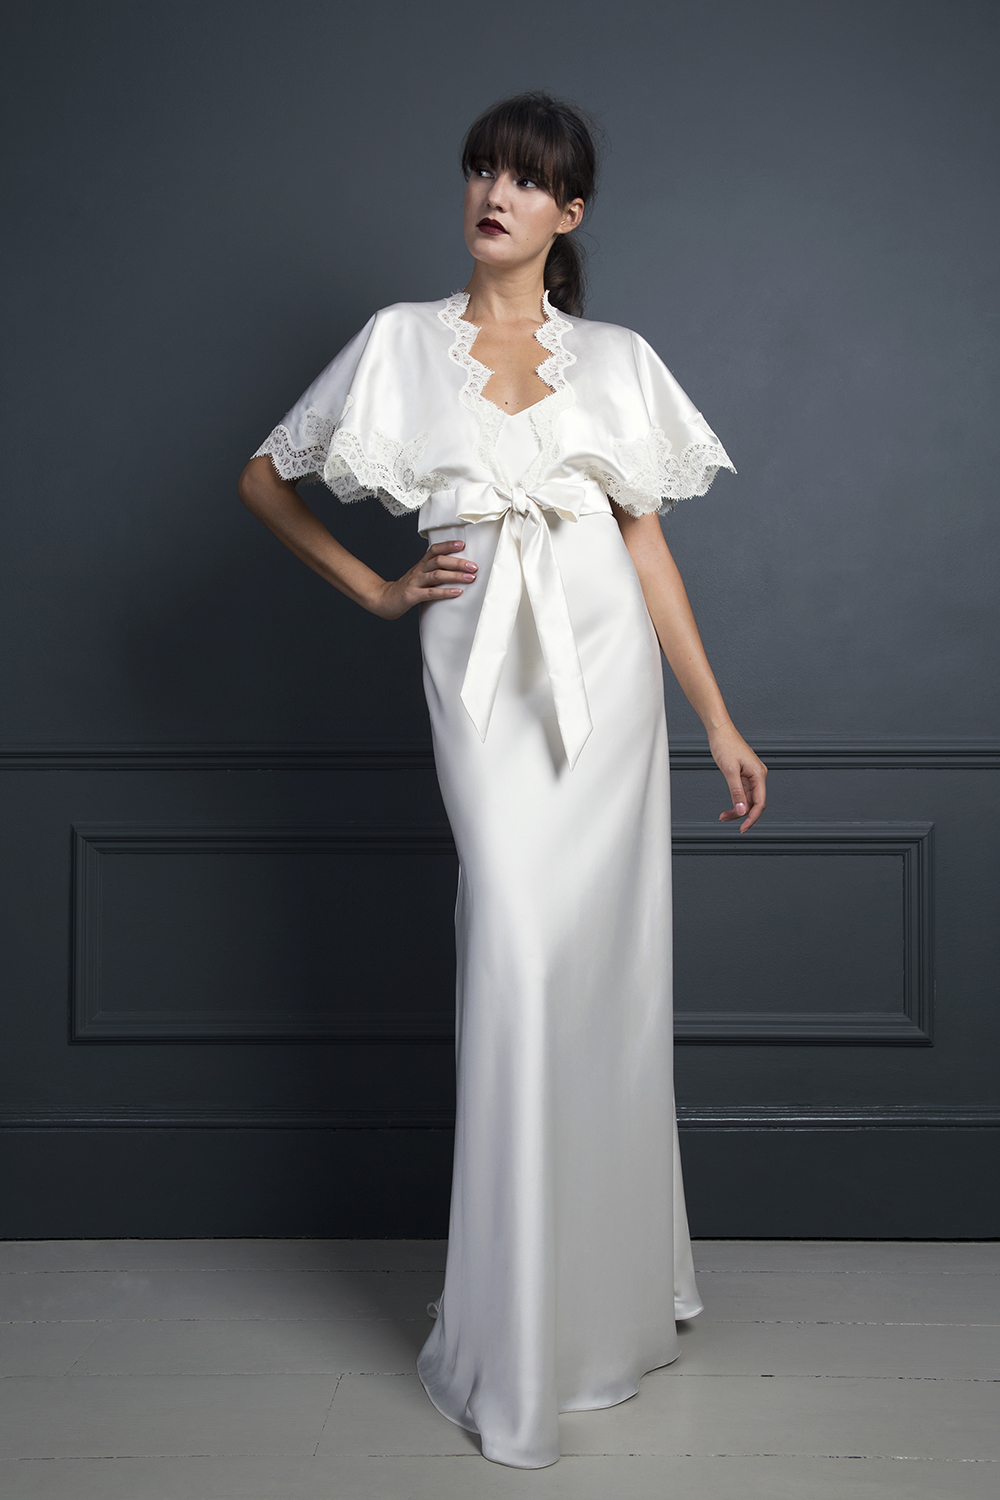 KIKI KIMONO TOP & IRIS SLIP | WEDDING DRESS BY HALFPENNY LONDON